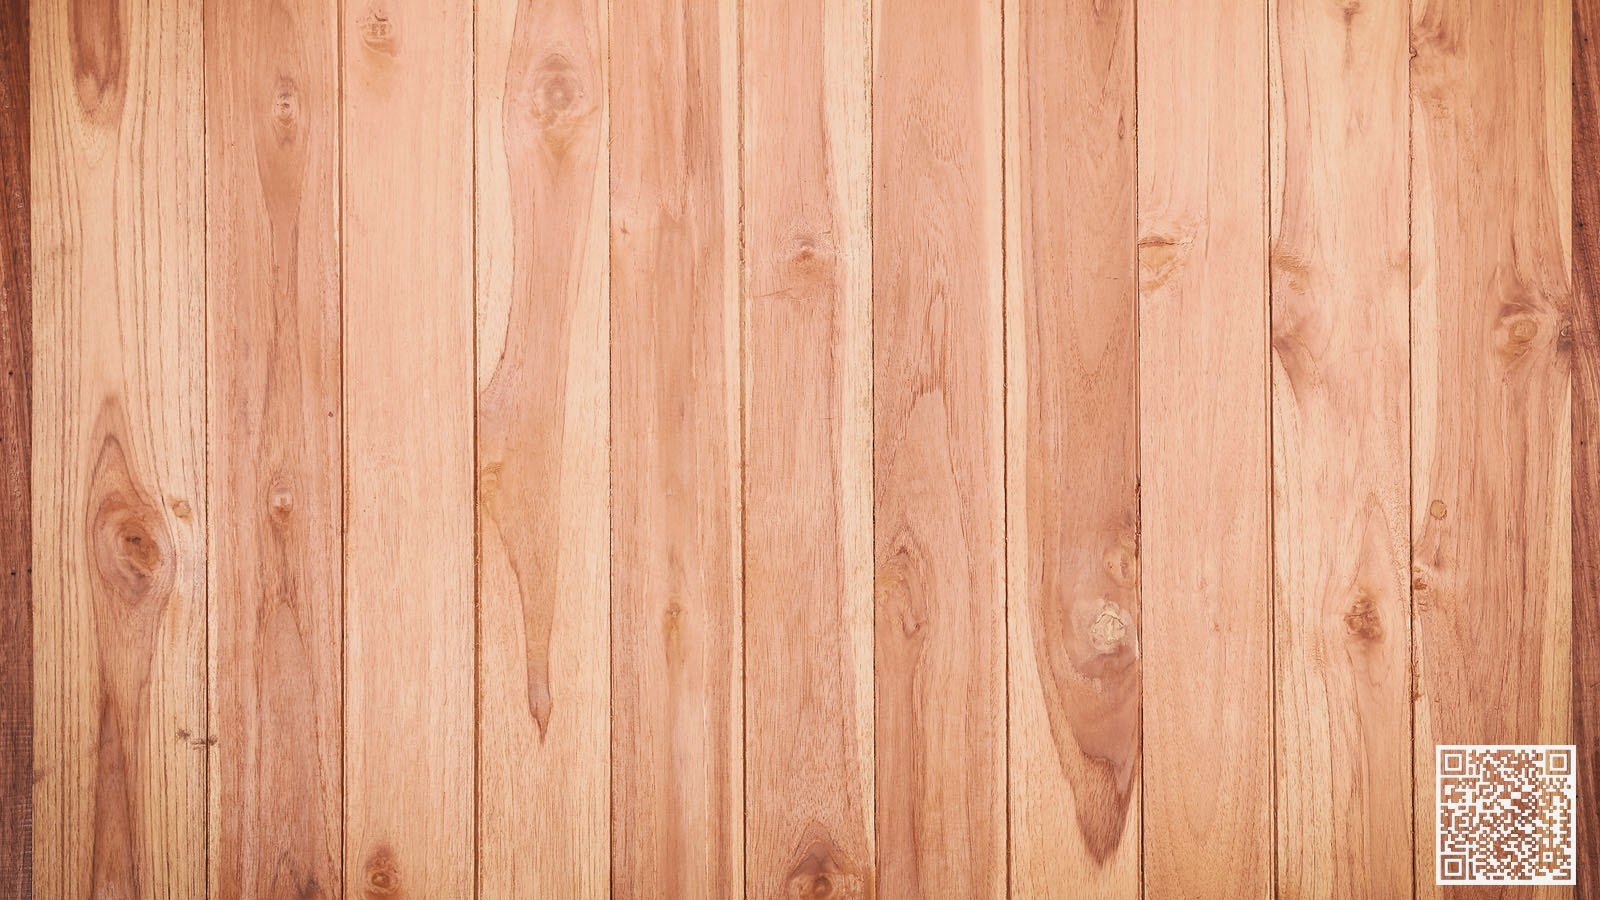 Download free wood background closeup background texture for Wood wallpaper for walls